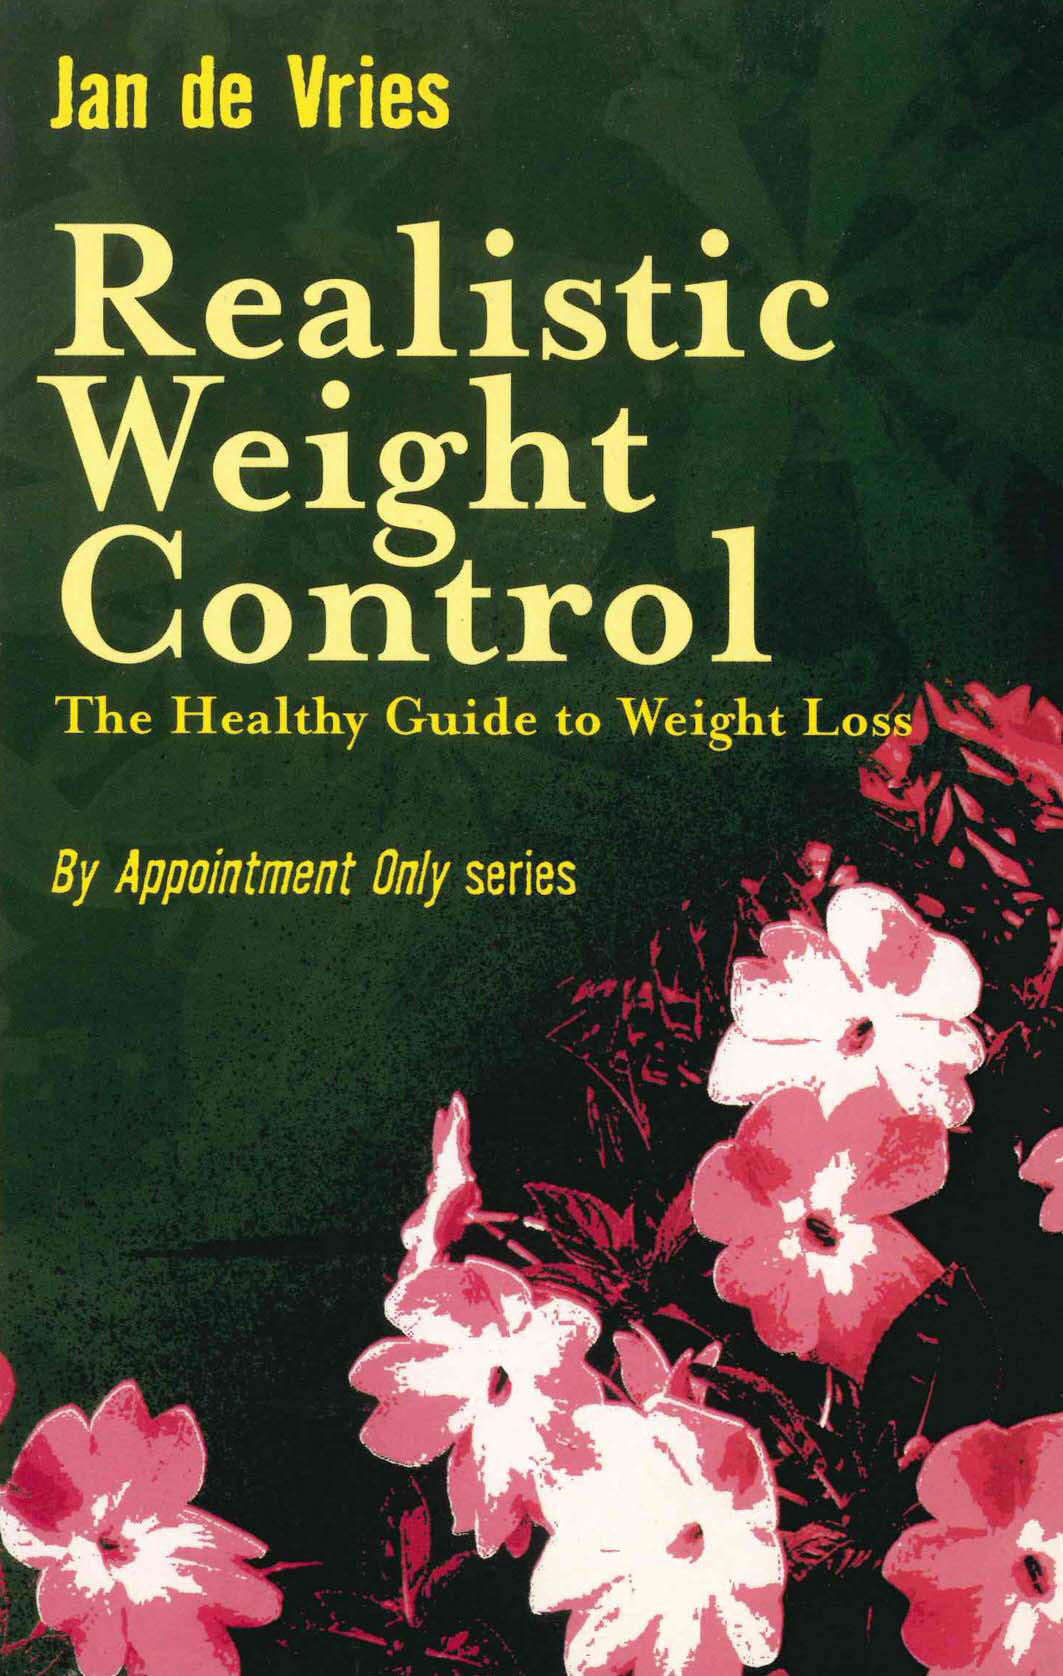 Realistic Weight Control The Healthy Guide to Weight Loss